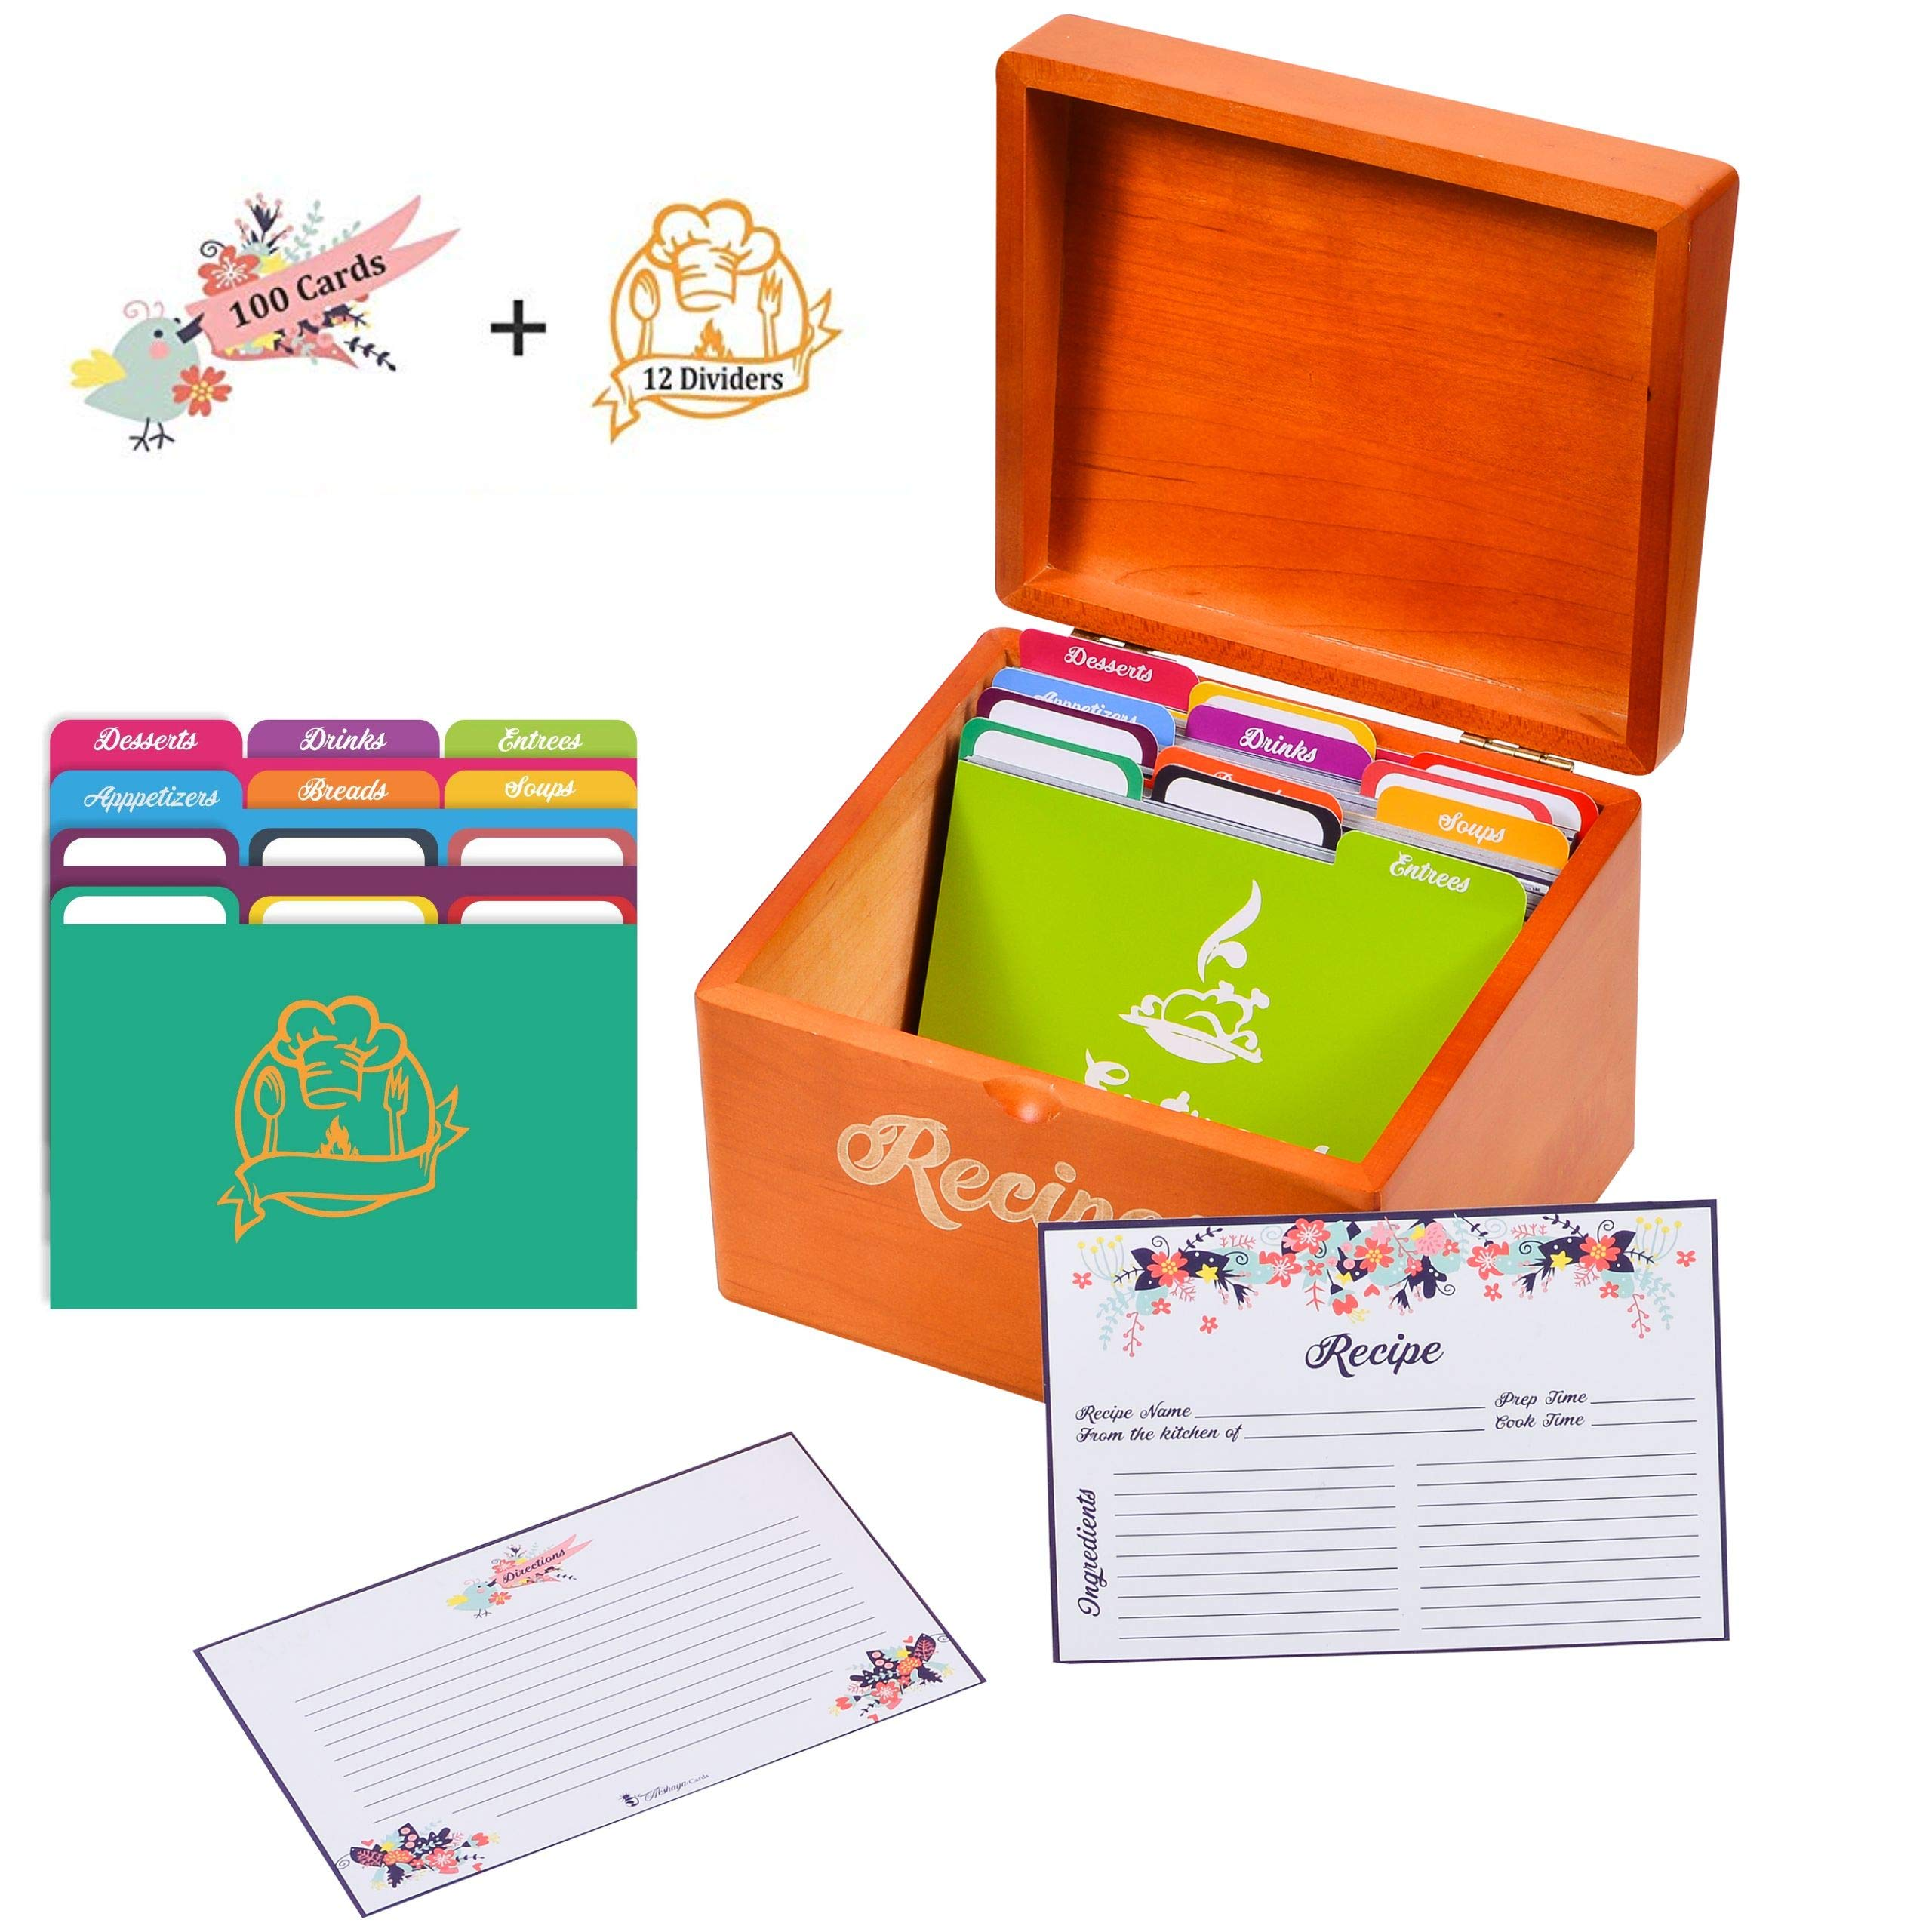 Akshaya Maplewood Recipe Box Gift Set with 100 recipe cards 4x6 and 12 dividers   Perfect gift for Women's Bridal Shower and Weddings